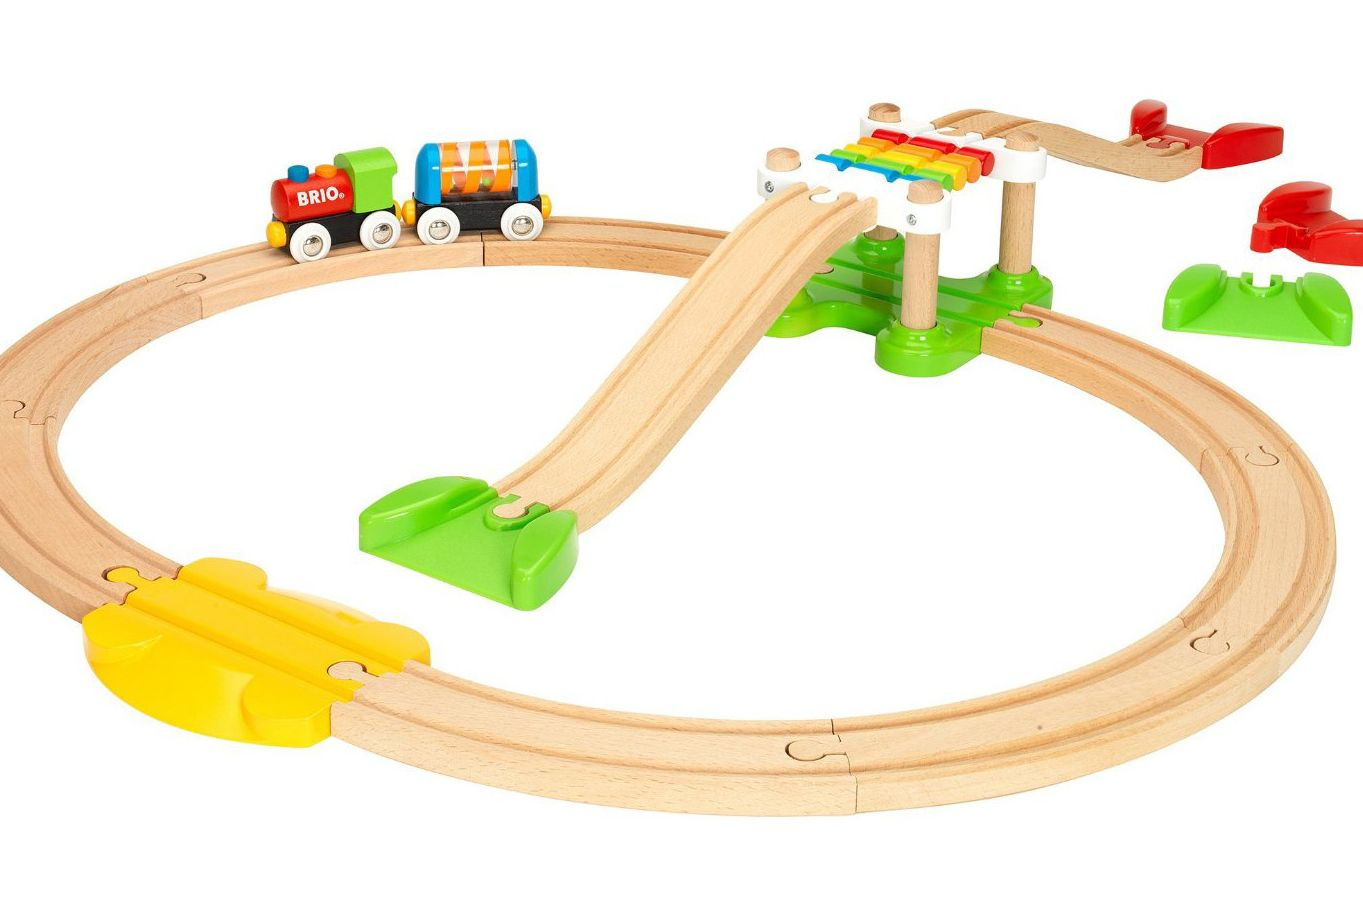 Brio Beginner Train Set - Best Gifts for Two Year Olds